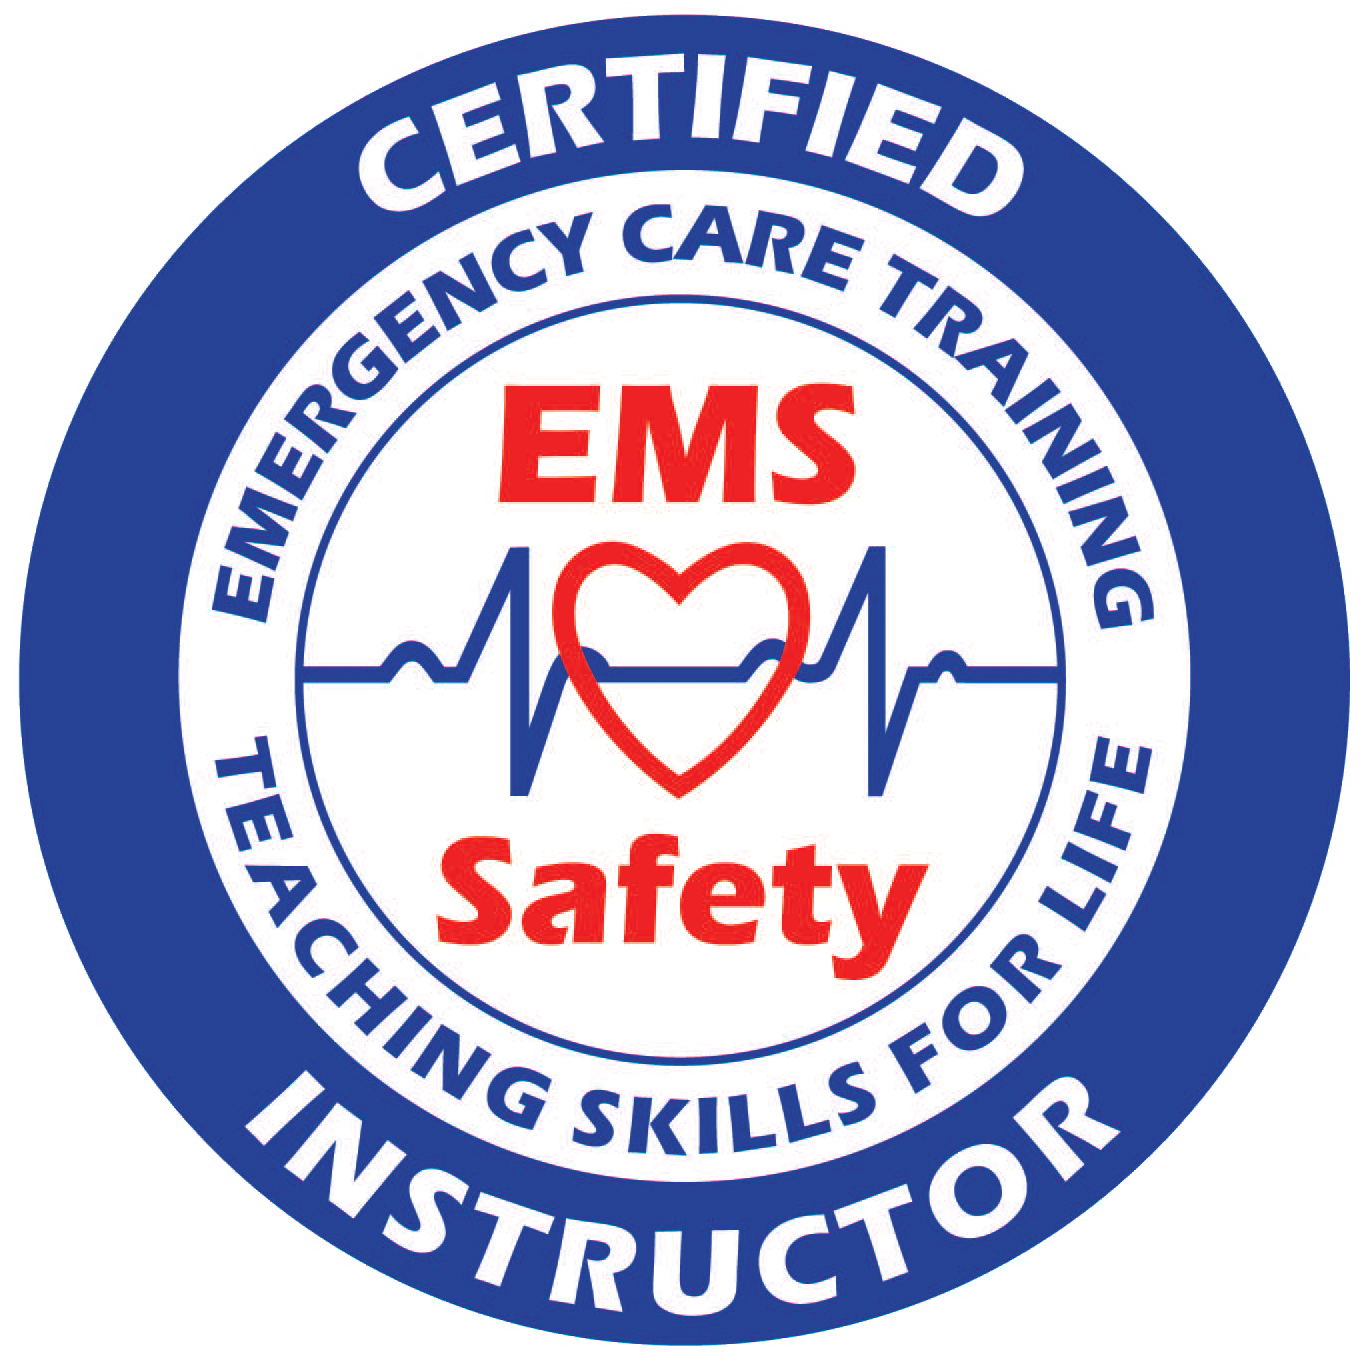 Environmental safety services cpr aed first aid training xflitez Images